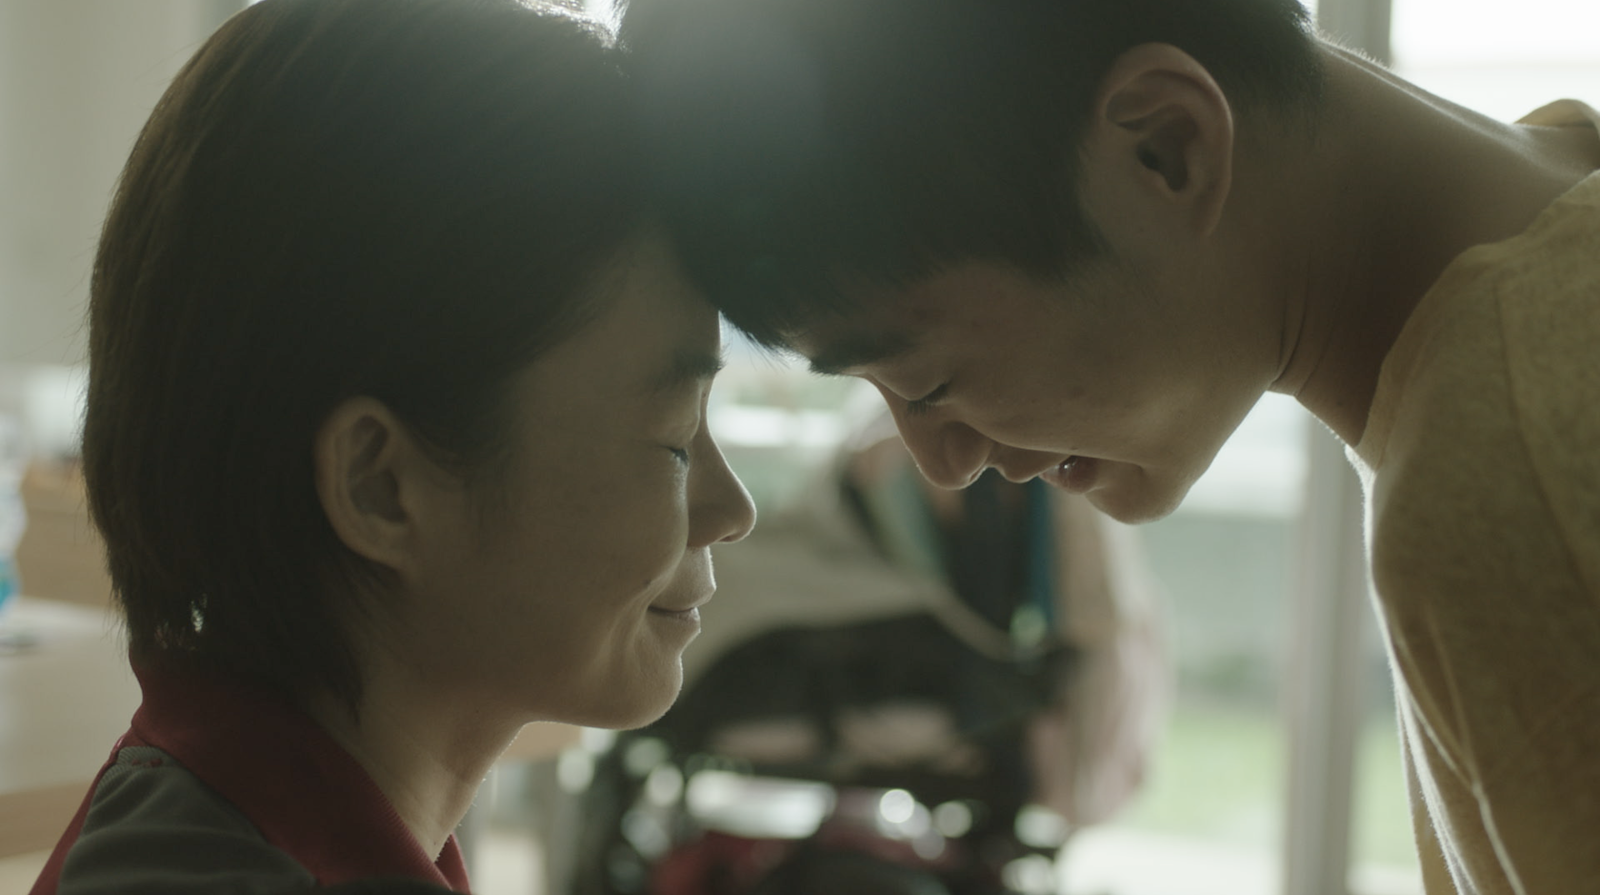 Image from HBO Asia